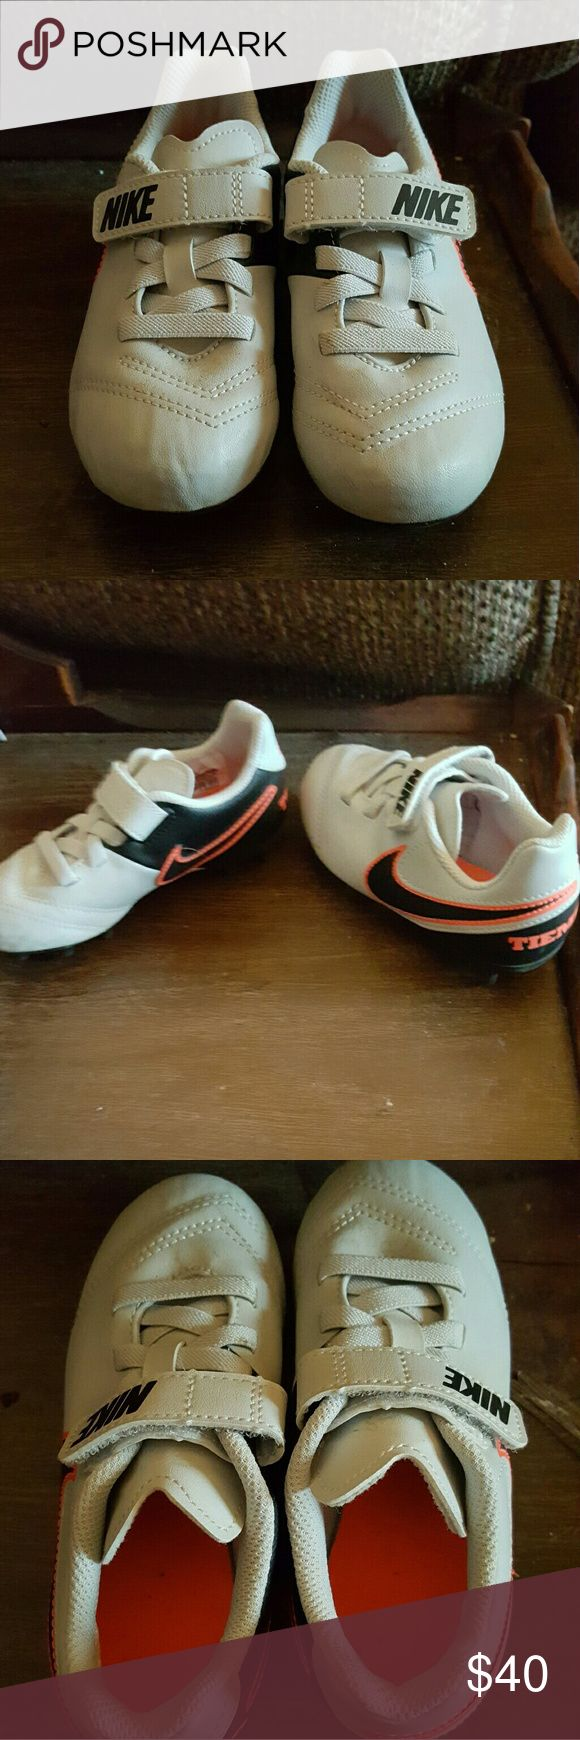 Toddler size 10 soccer cleats These cleats are brand new have only been worn once for about 20 mins price negotiable Nike Shoes